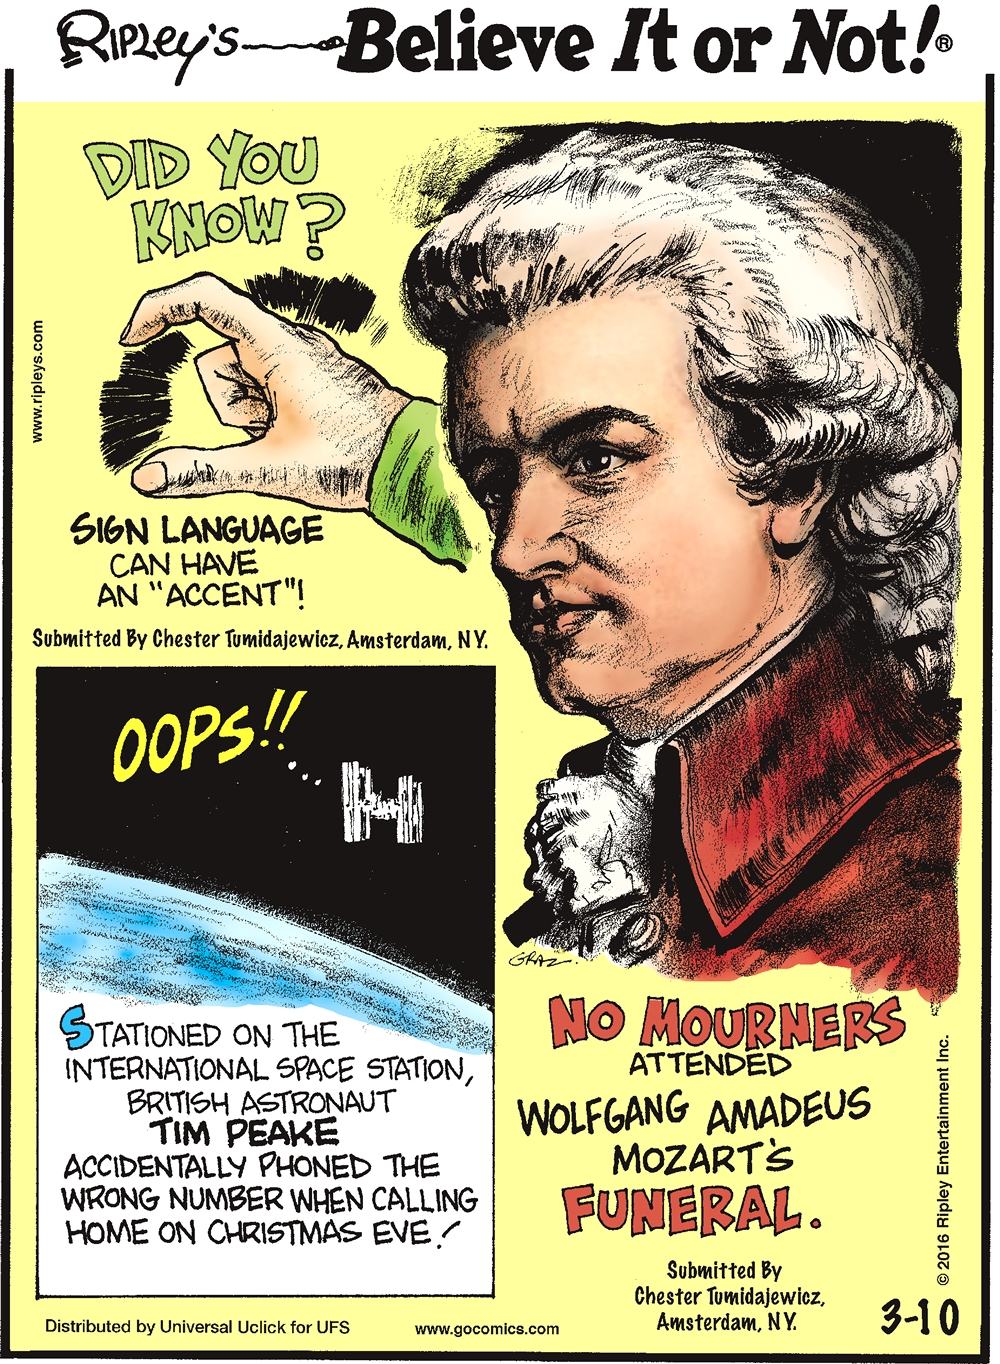 "Did you know? Sign language can have an ""accent""! Submitted by Chester Tumidajewicz, Amsterdam, NY. --------------------- Stationed on the International Space Station, British astronaut Tim Peake accidentally phoned the wrong number when calling home on Christmas Eve! --------------------- No mourners attended Wolfgang Amadeus Mozart's funeral. Submitted by Chester Tumidajewicz, Amsterdam, NY."